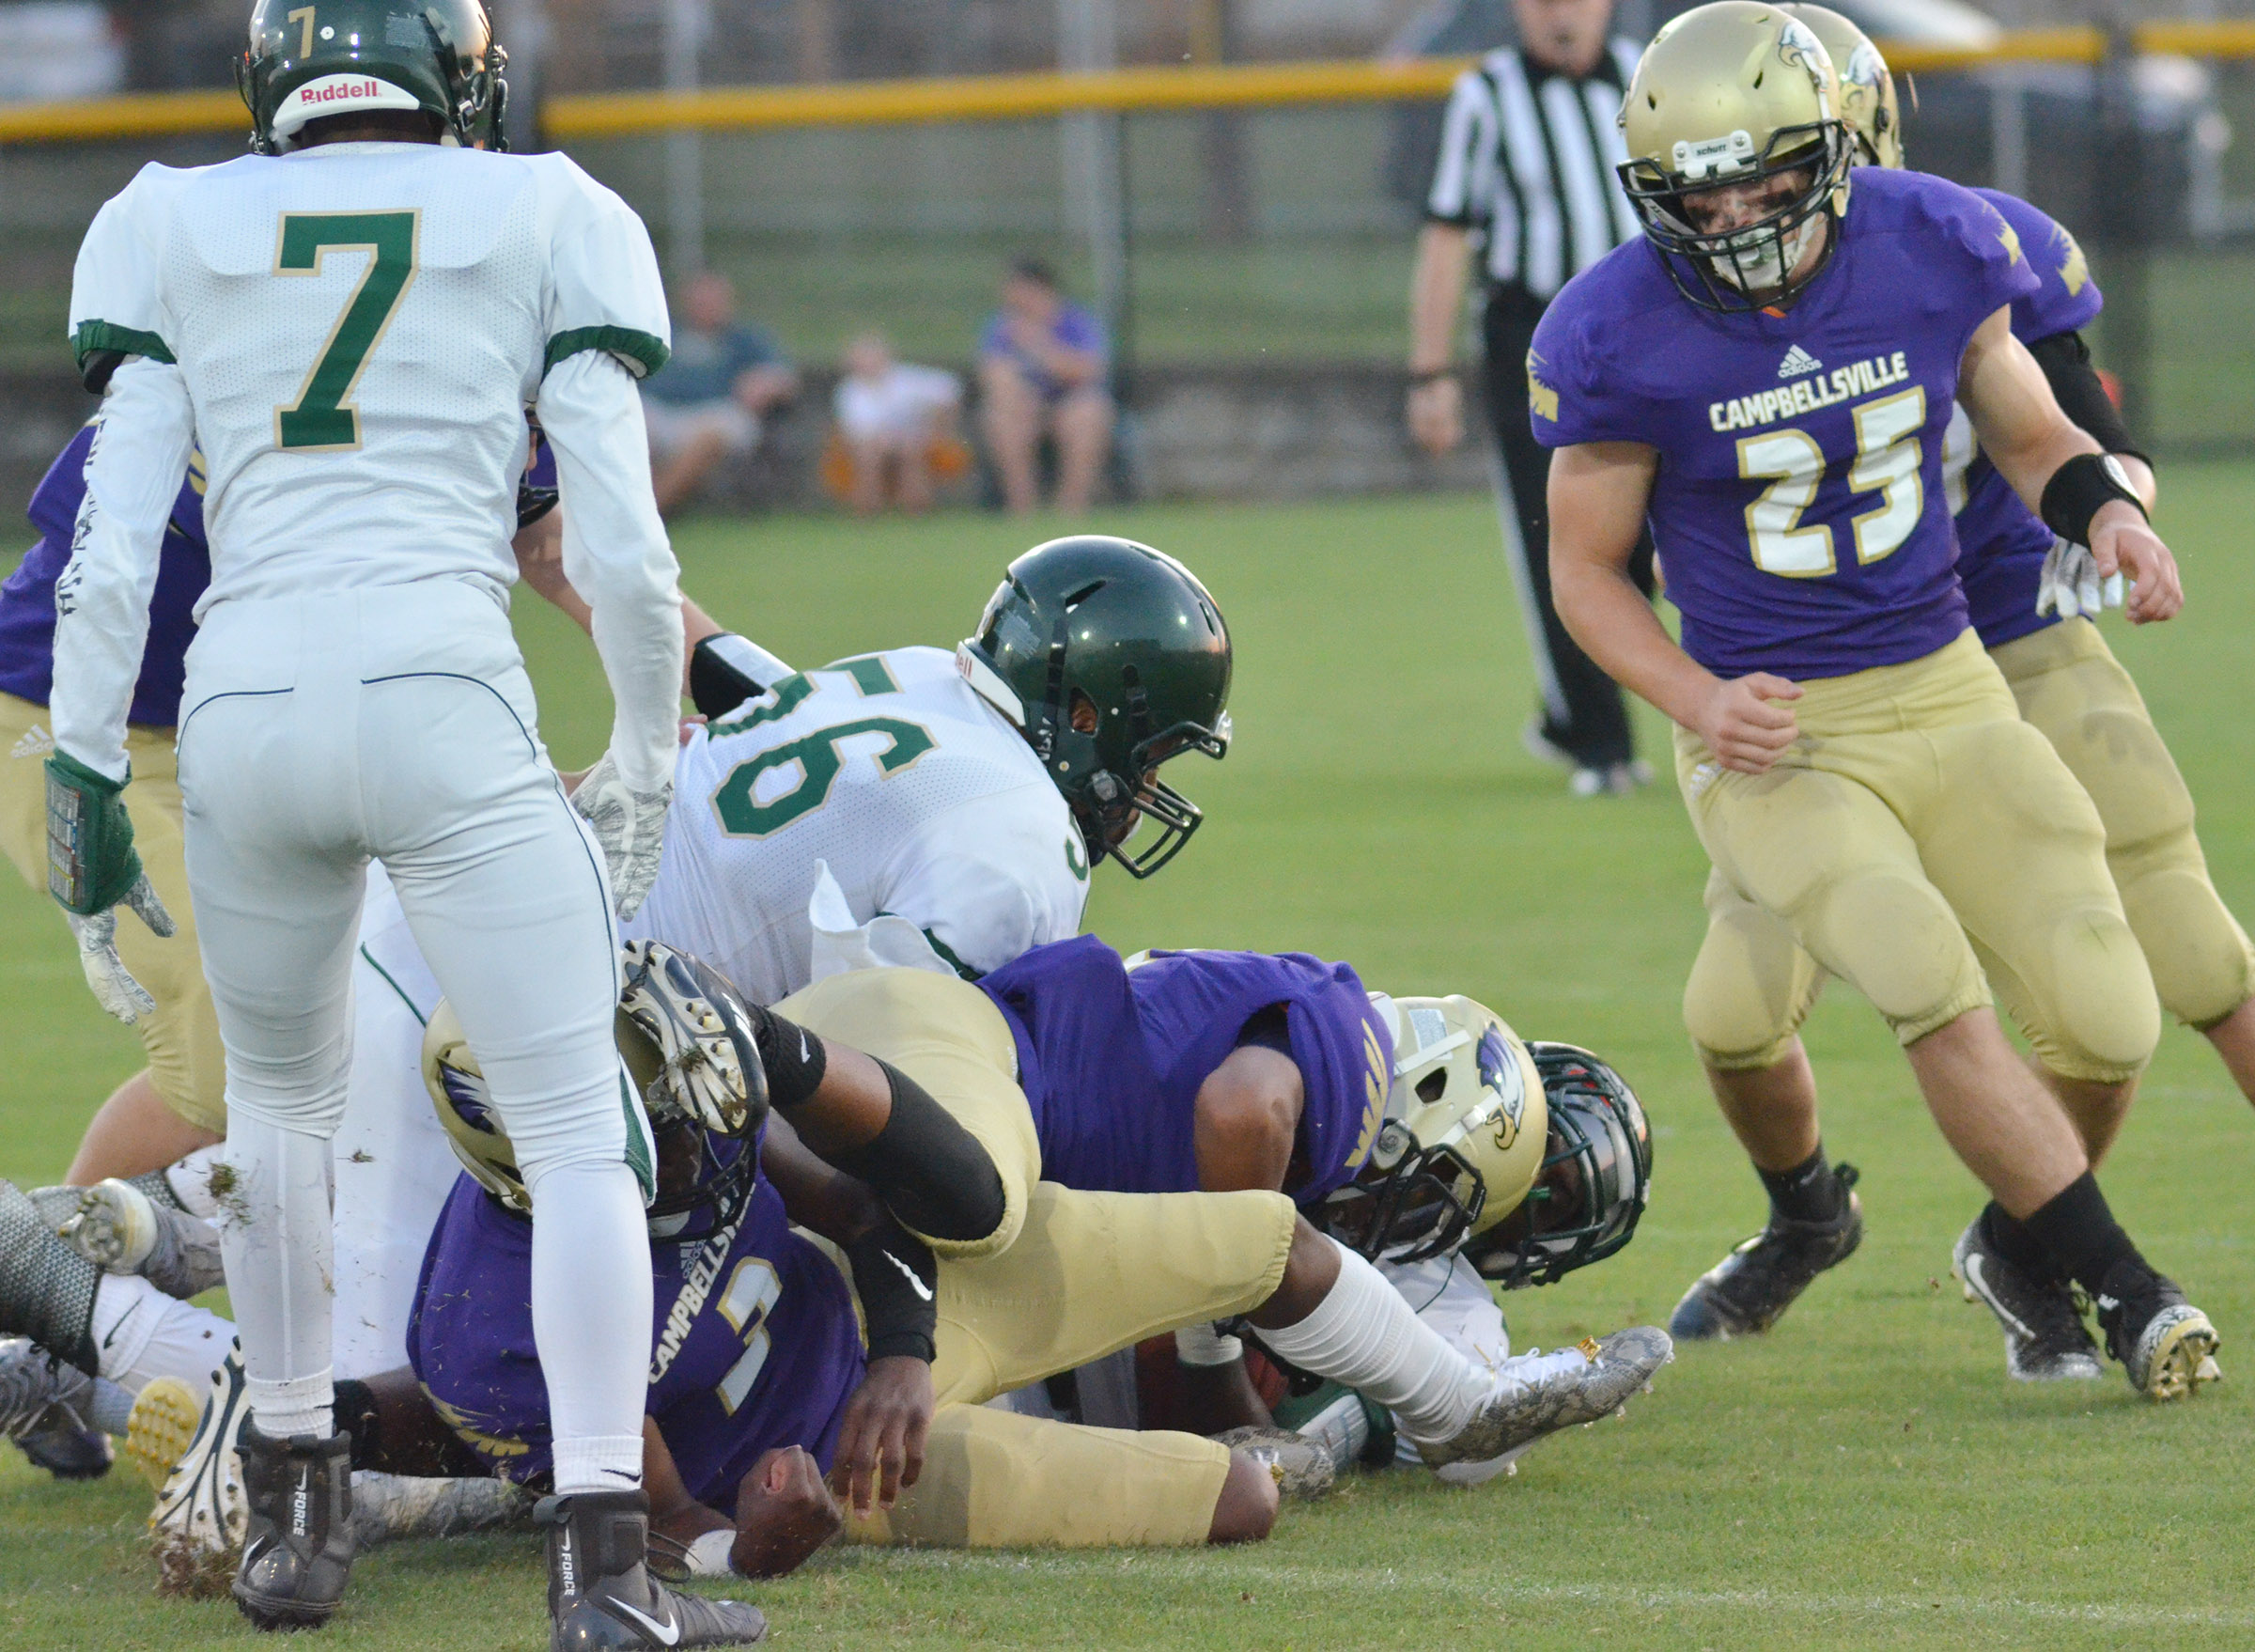 CHS junior Tristan Johnson and his teammates tackle.